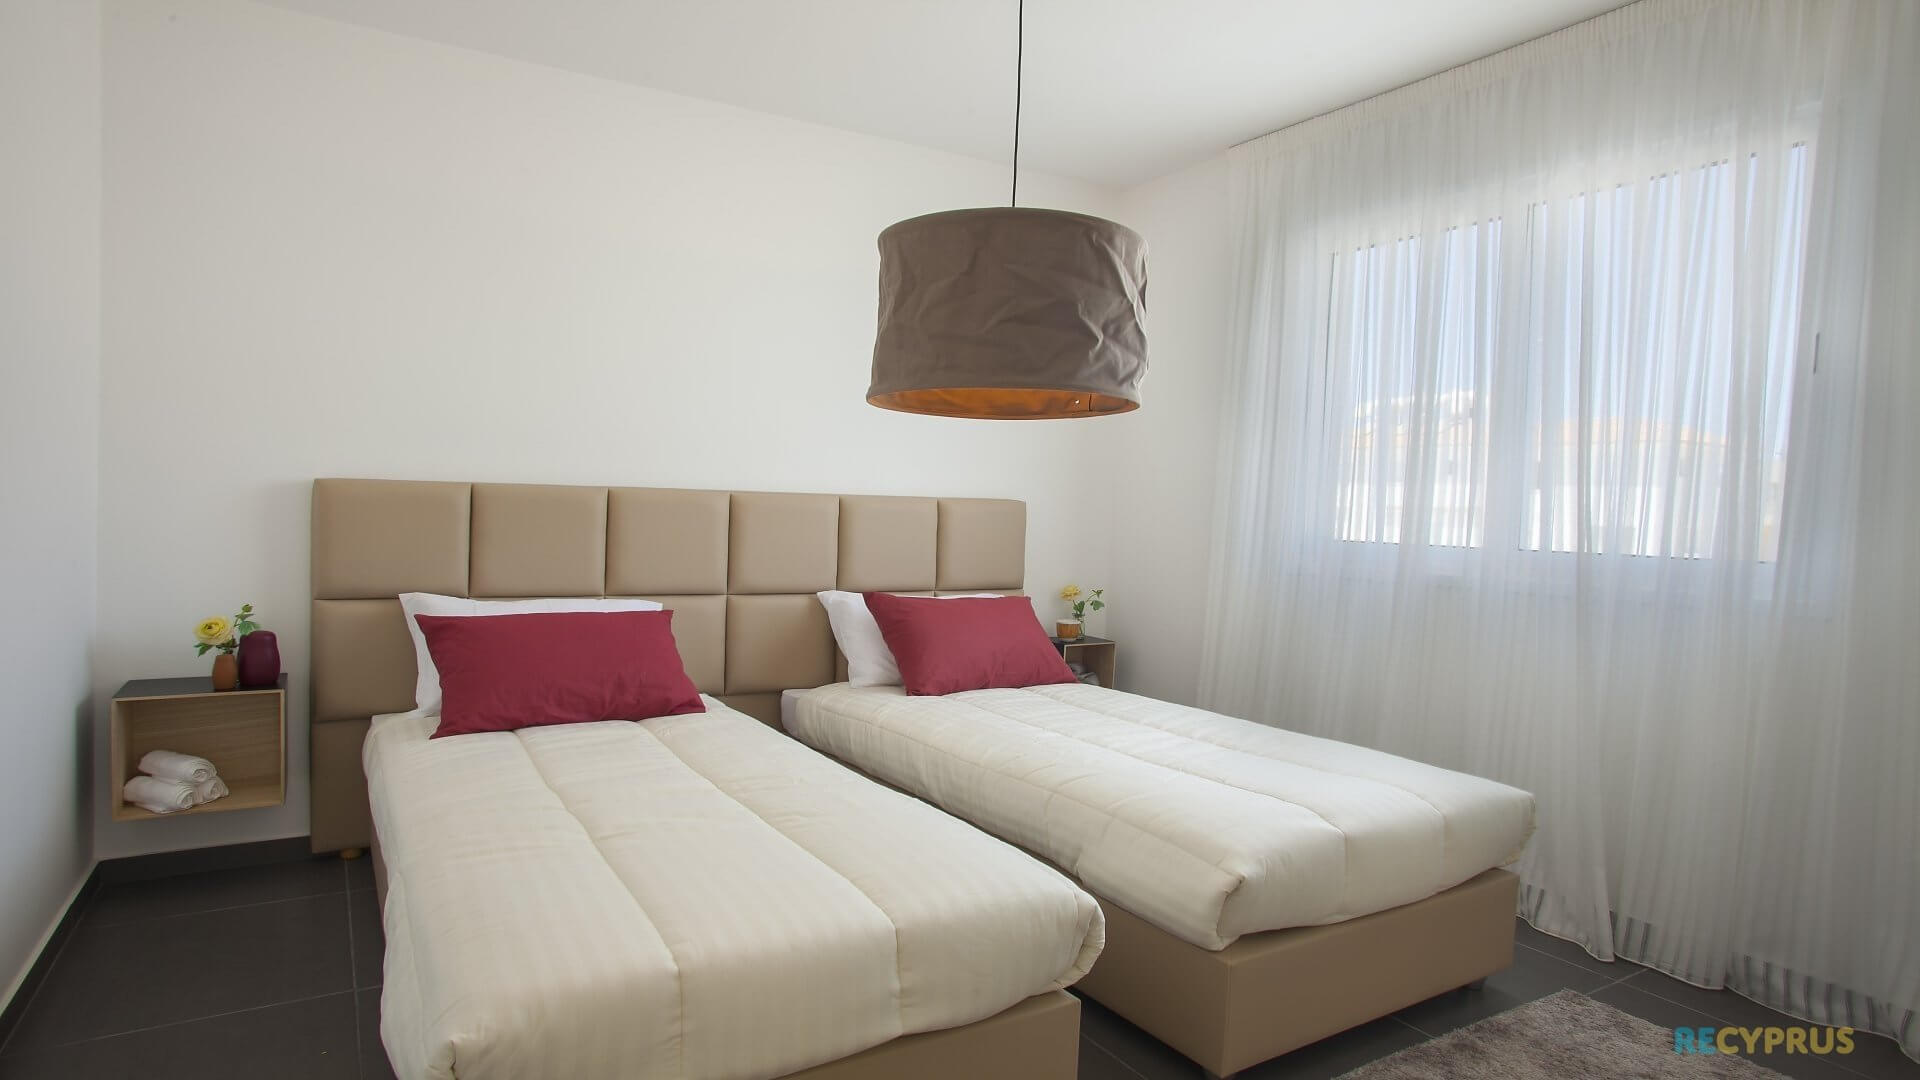 Apartment for sale Kapparis Famagusta Cyprus 6 3442